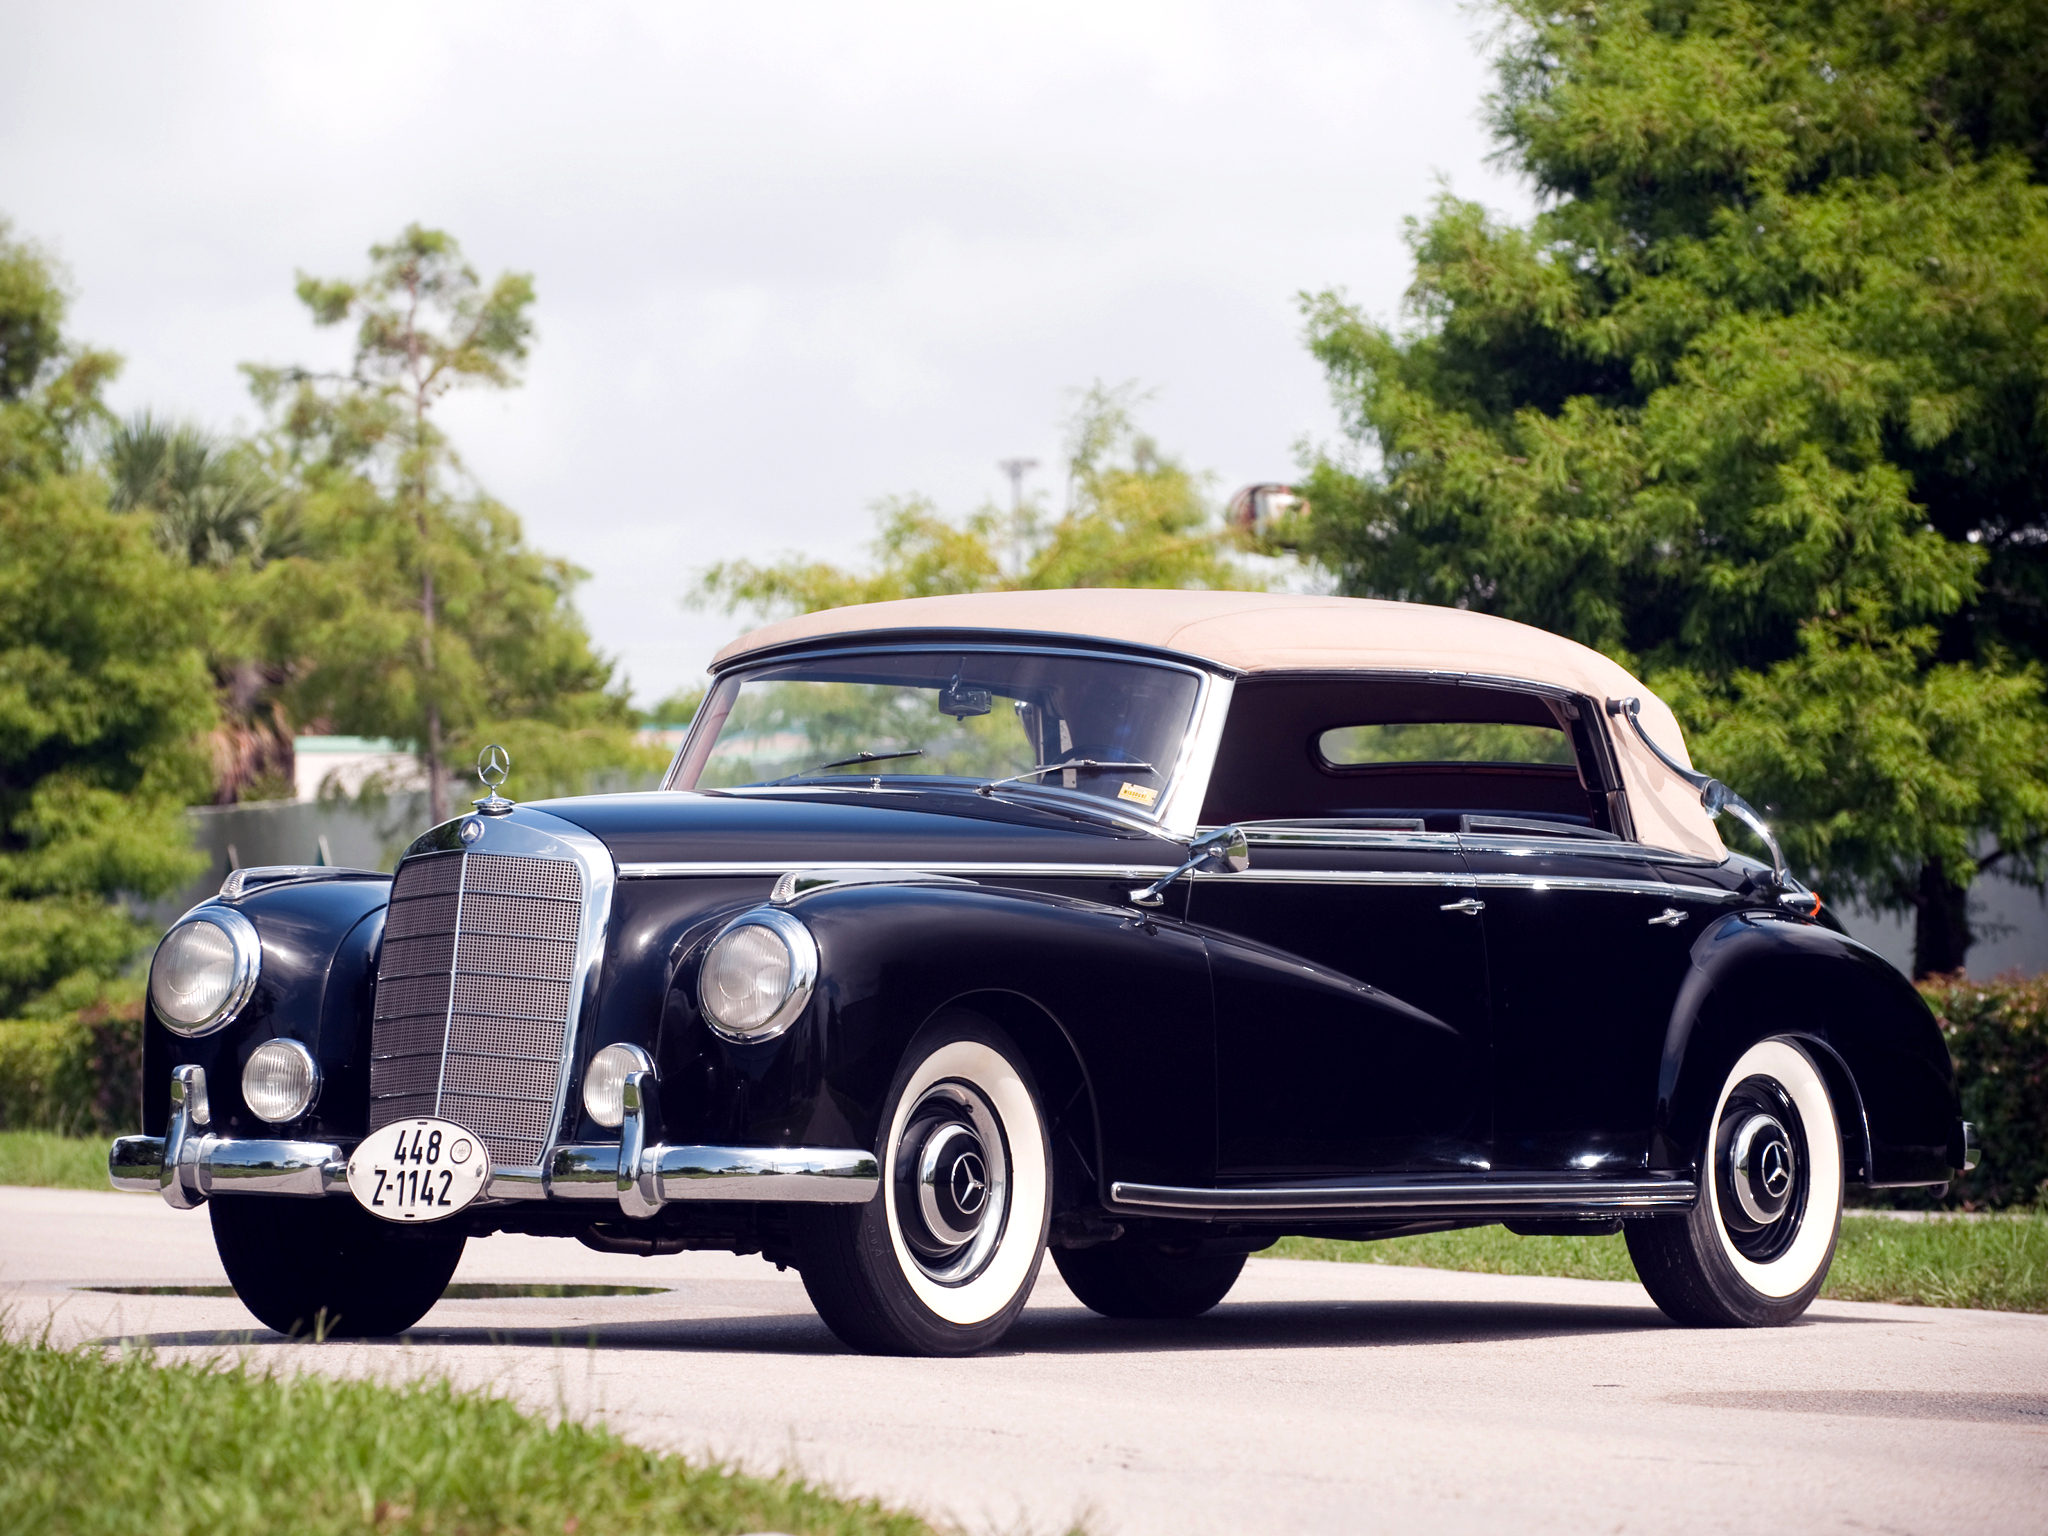 1951 mercedes benz 300 cabriolet d w186 luxury retro j